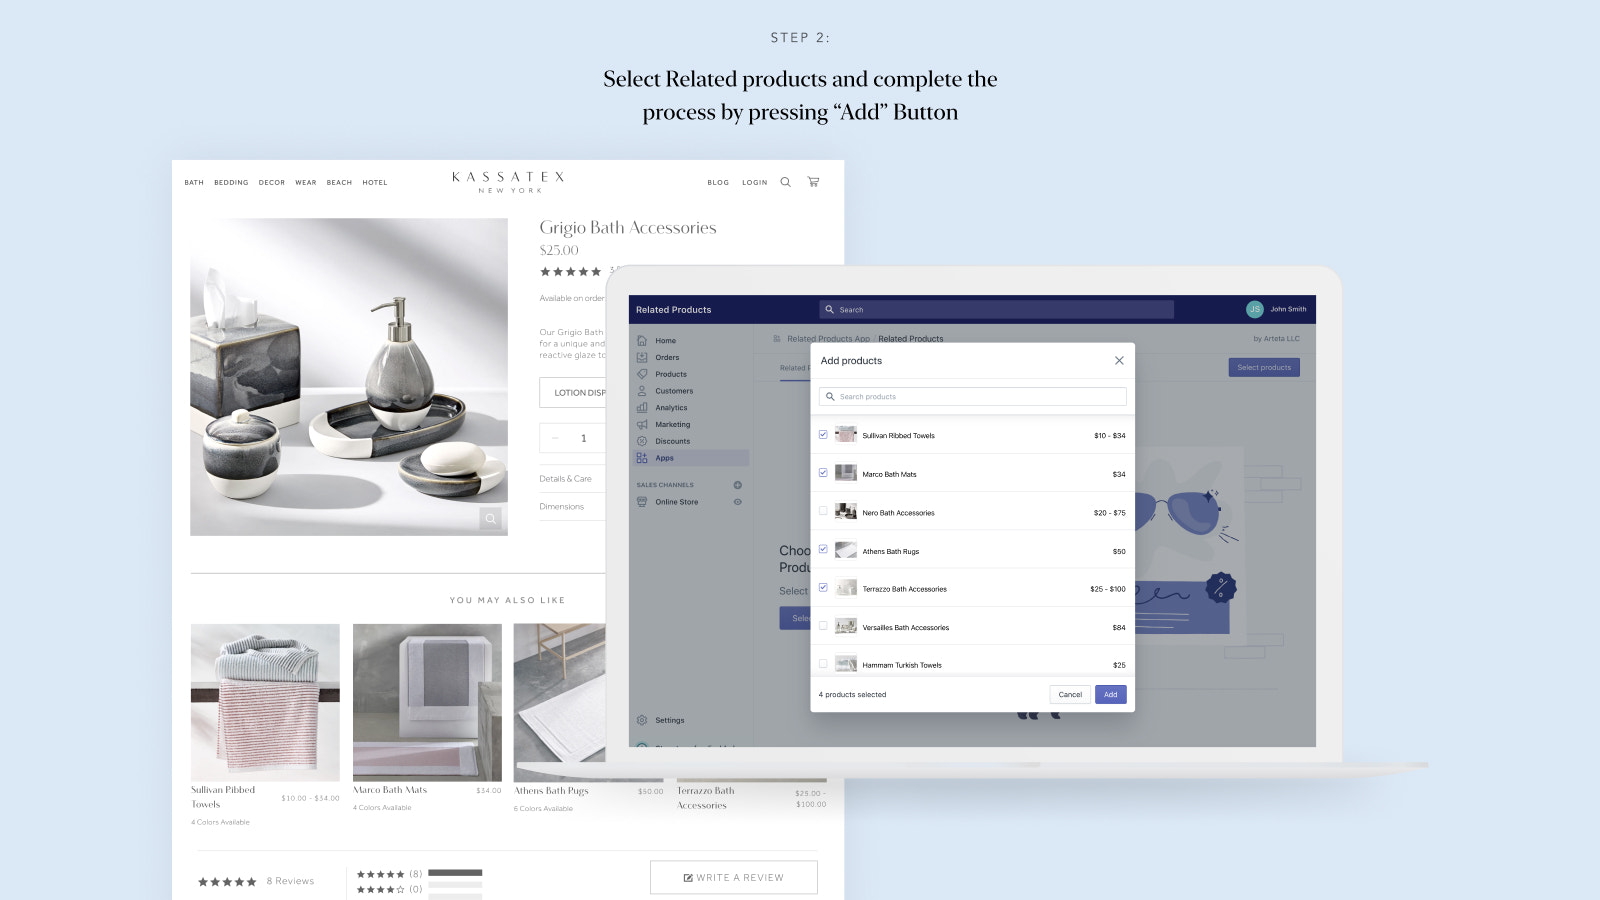 Customize your related product section